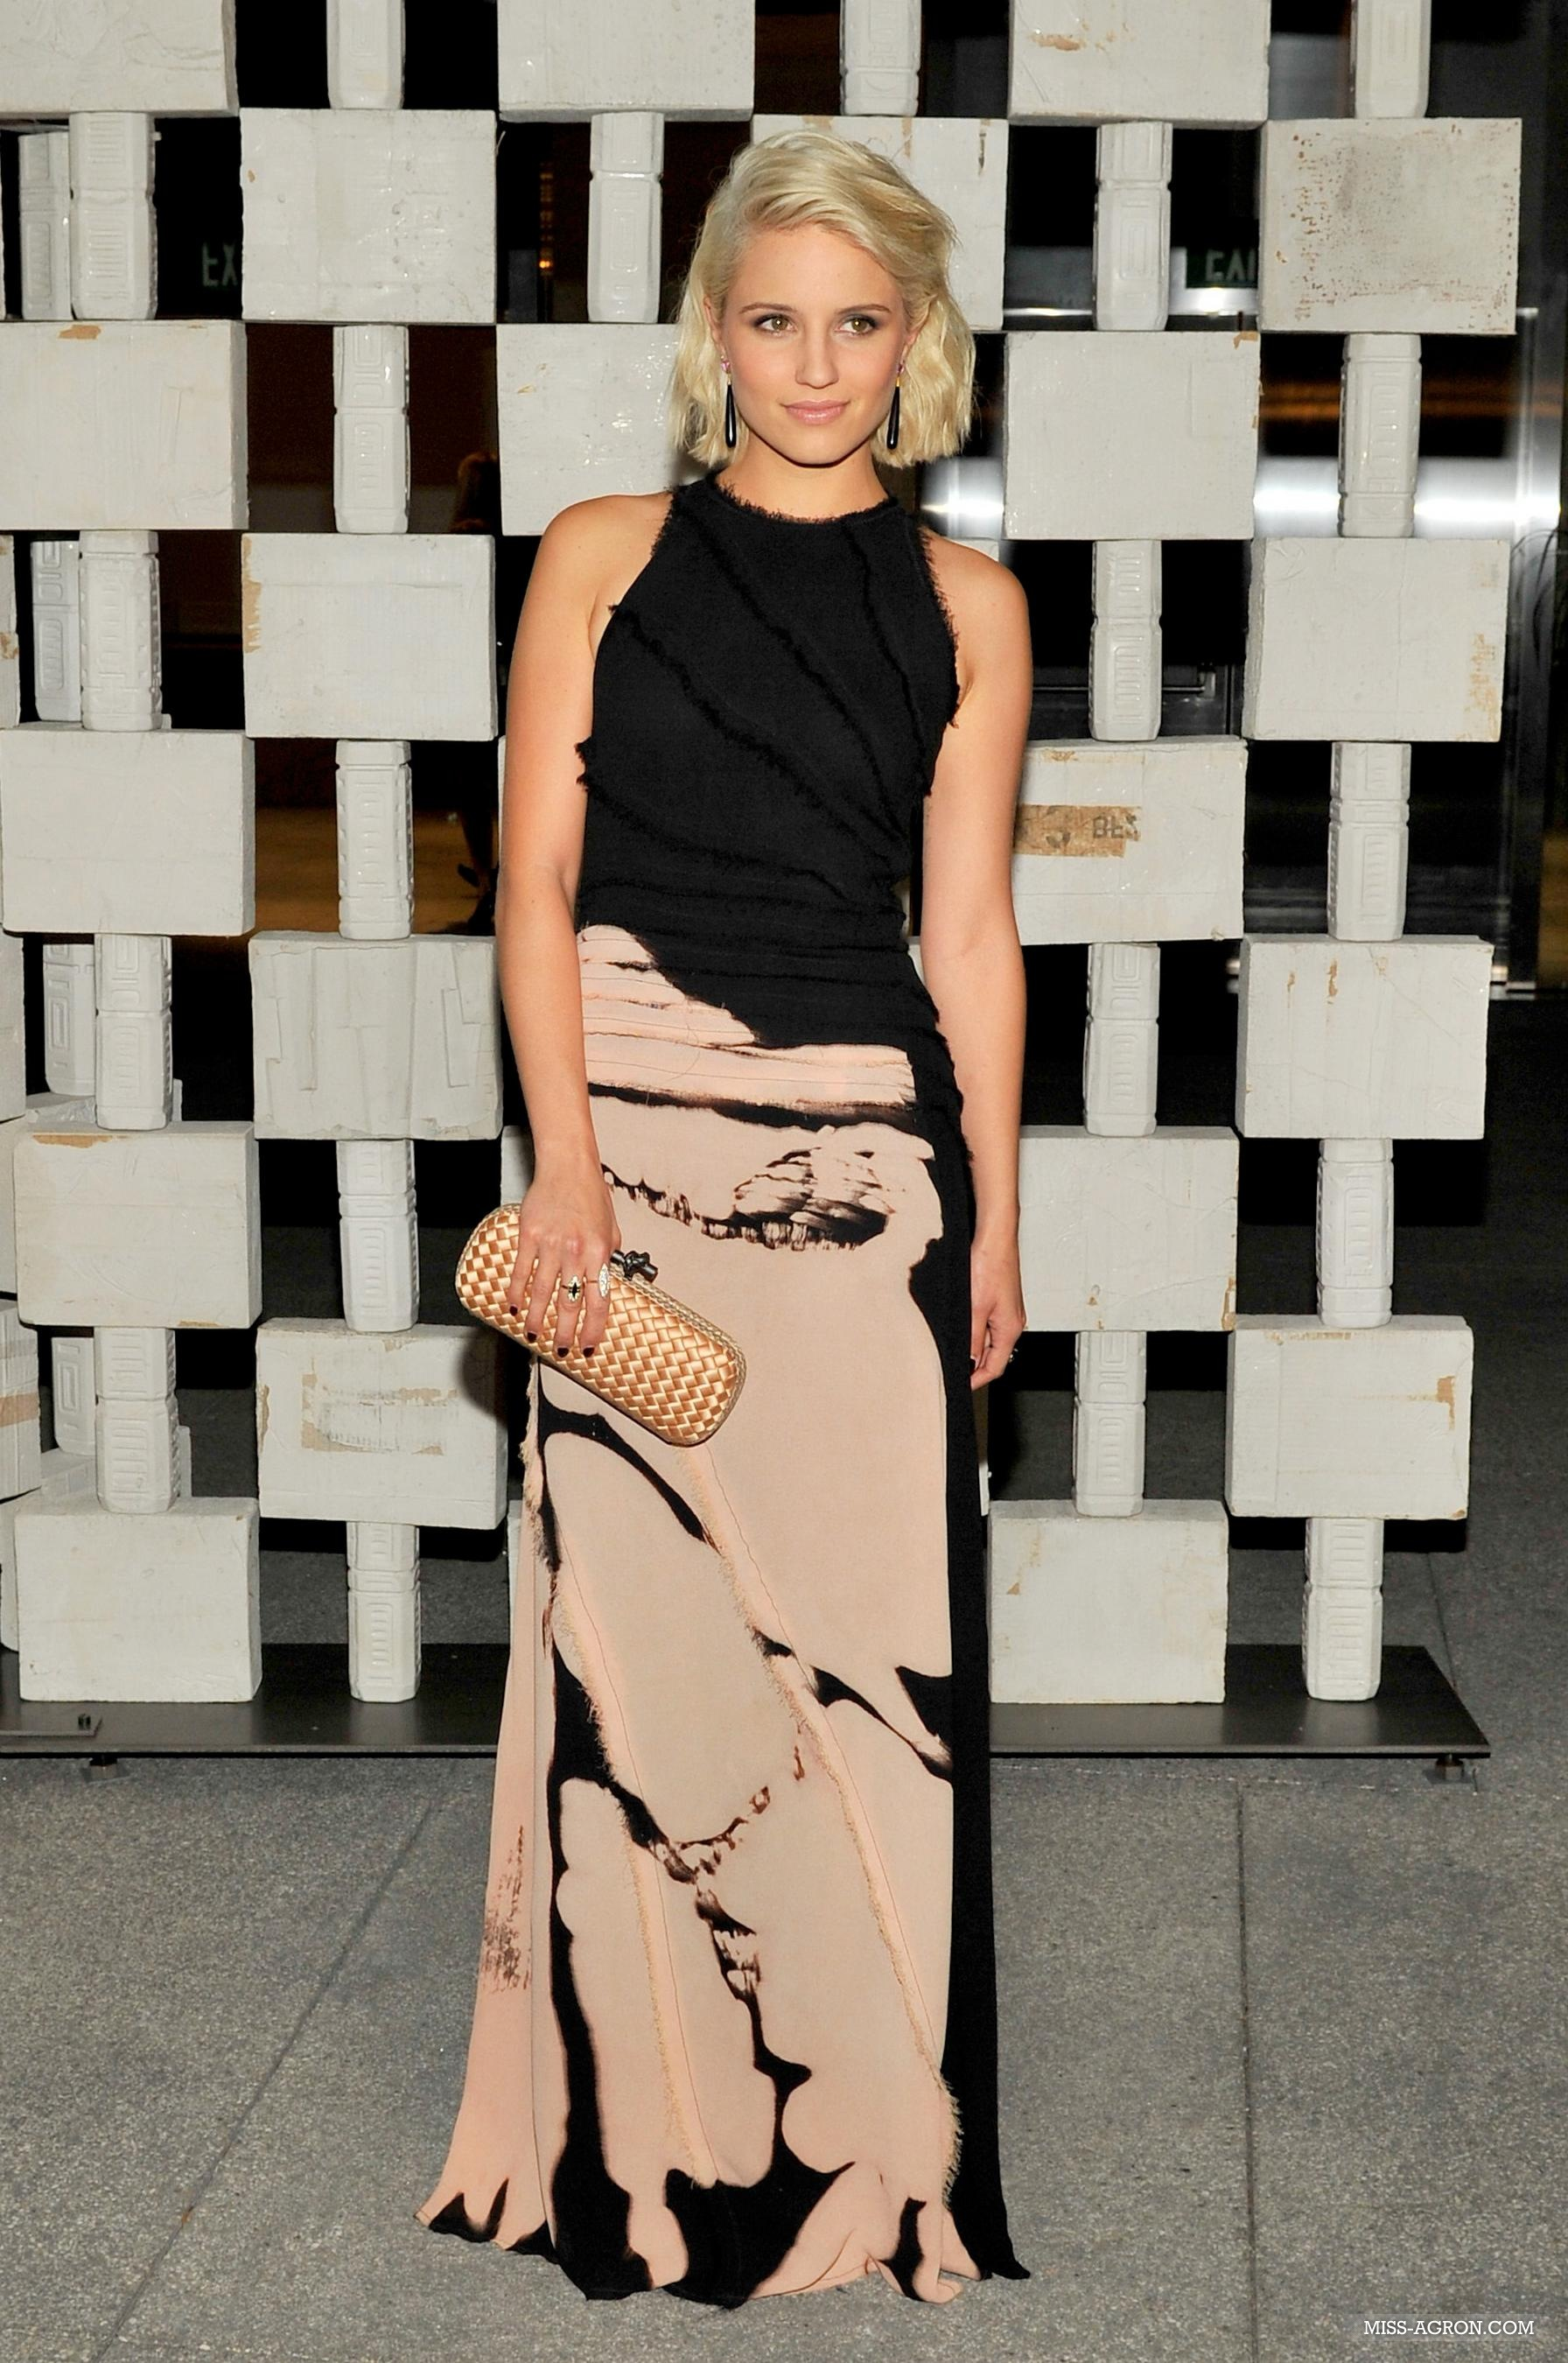 dianna-agron-at-hammer-museum-s-gala-in-the-garden-in-westwood_1